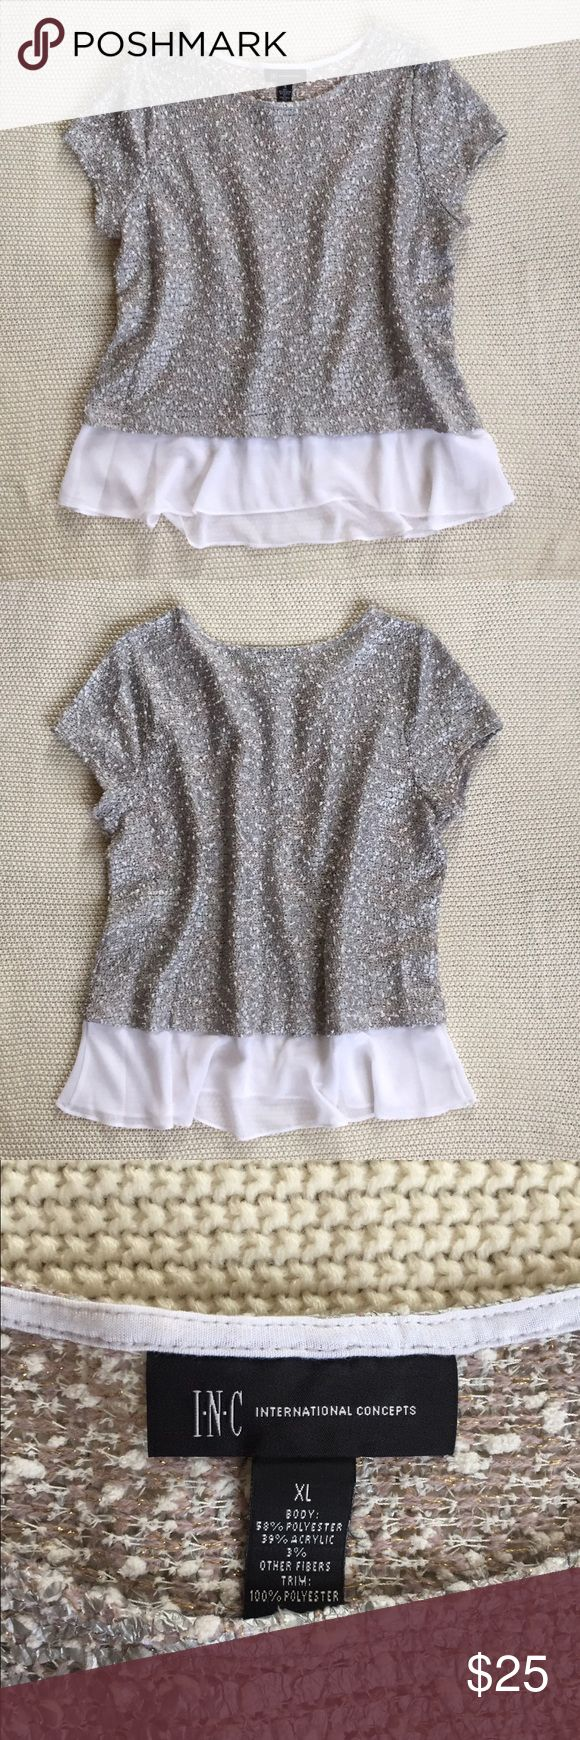 INC Top Gray/silver short sleeve top with slight shimmer. 58% polyester, 39% acrylic, 3% other fibers. White part - 100% polyester. INC International Concepts Tops